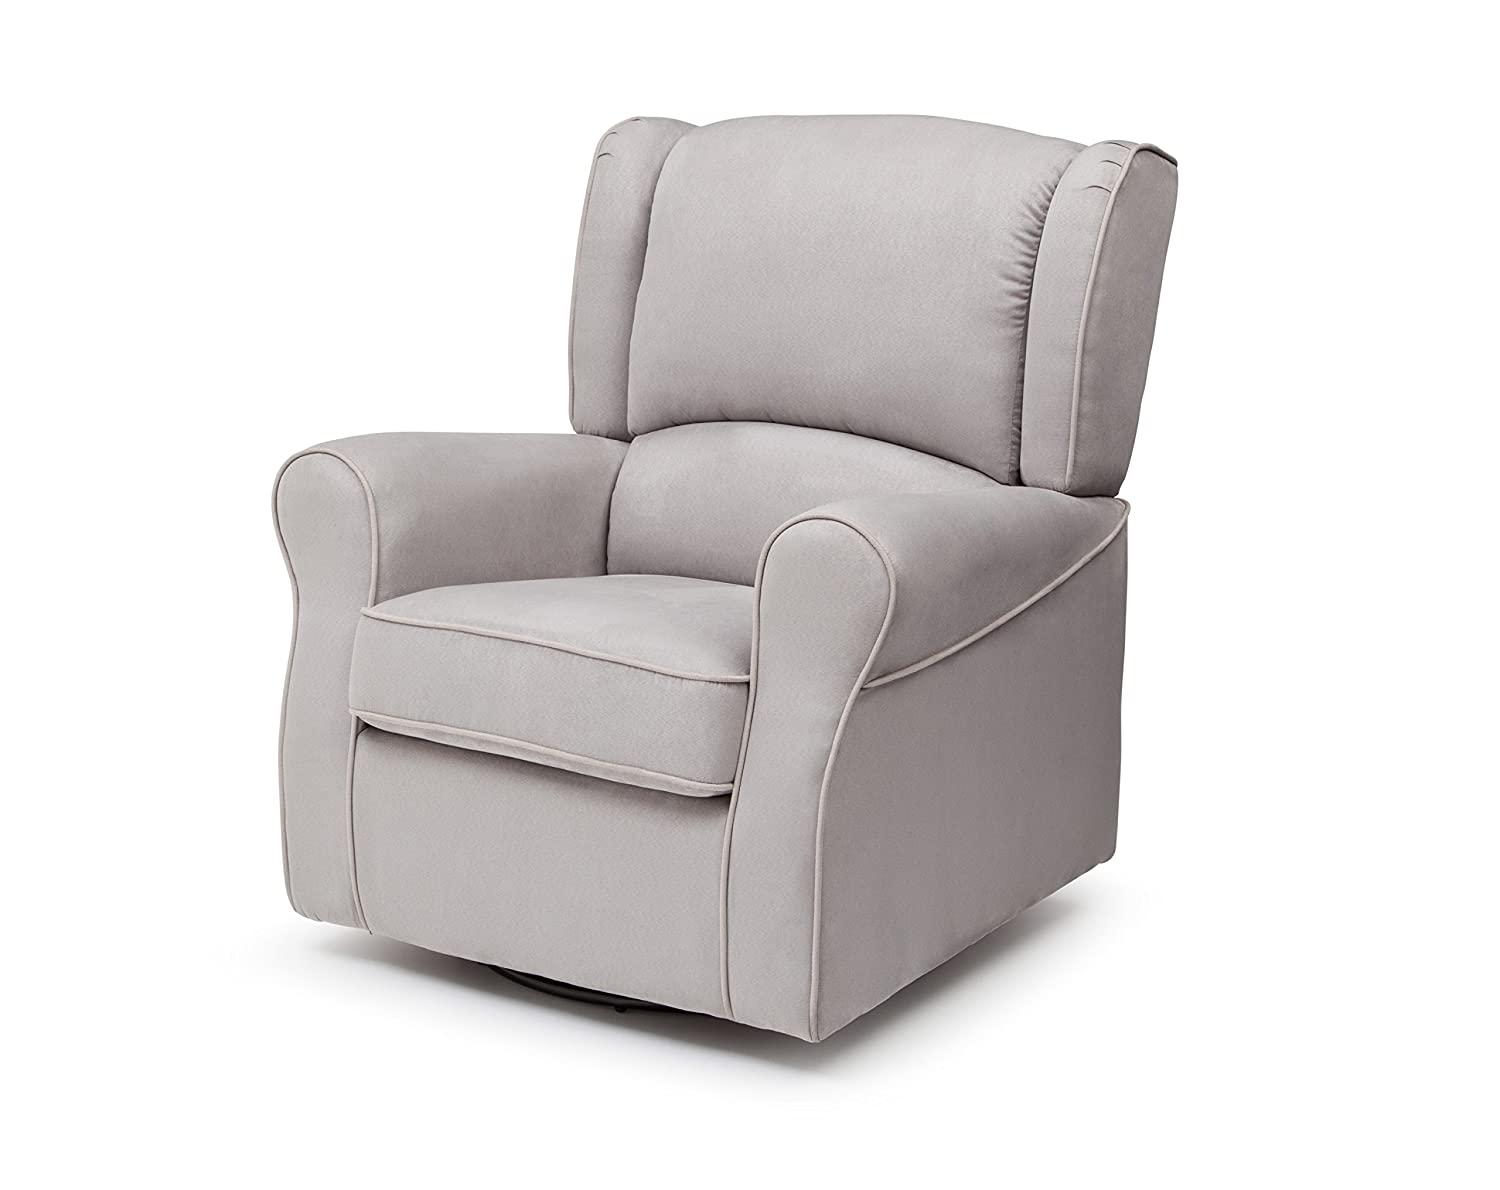 Amazon.com: Delta Furniture Morgan Upholstered Glider Swivel Rocker Chair,  Dove Grey: Baby